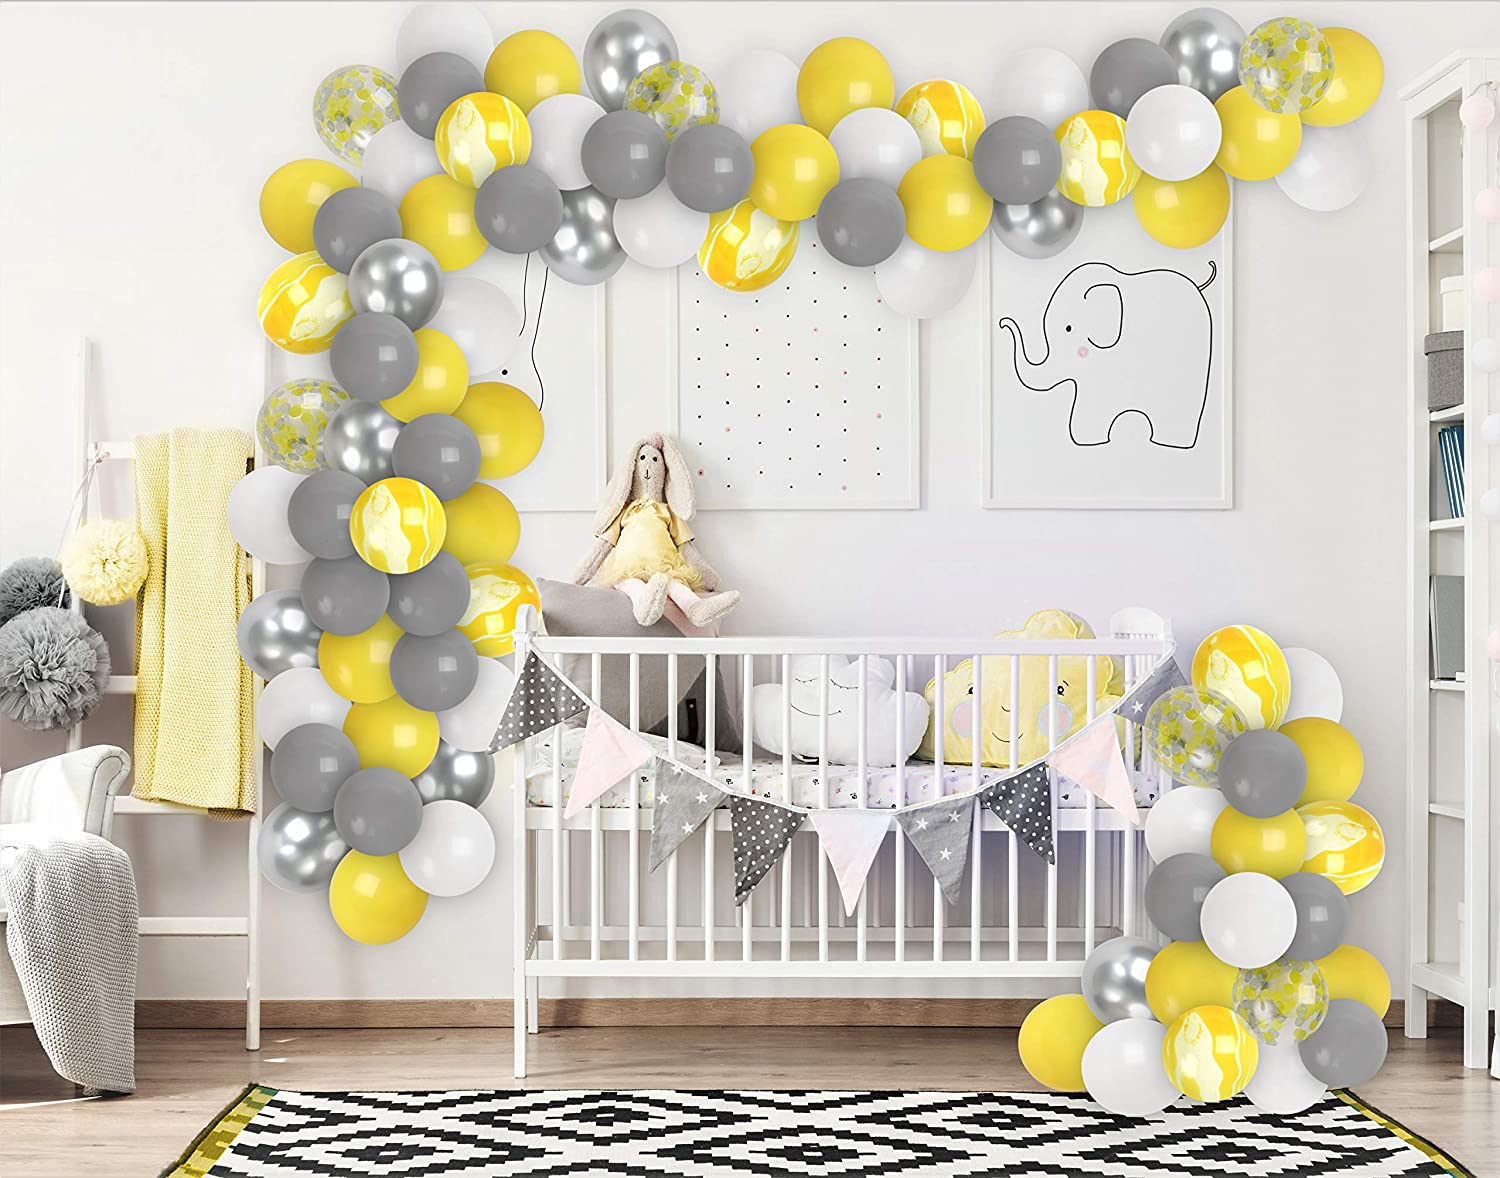 Elephant Baby Shower Decorations Grey Yellow Balloon Garland Kit Silver White Yellow Balloons Arch Grey Yellow Confetti Bumble Bee Baby Shower Birthday Party Supplies Gender Reveal Party Decor